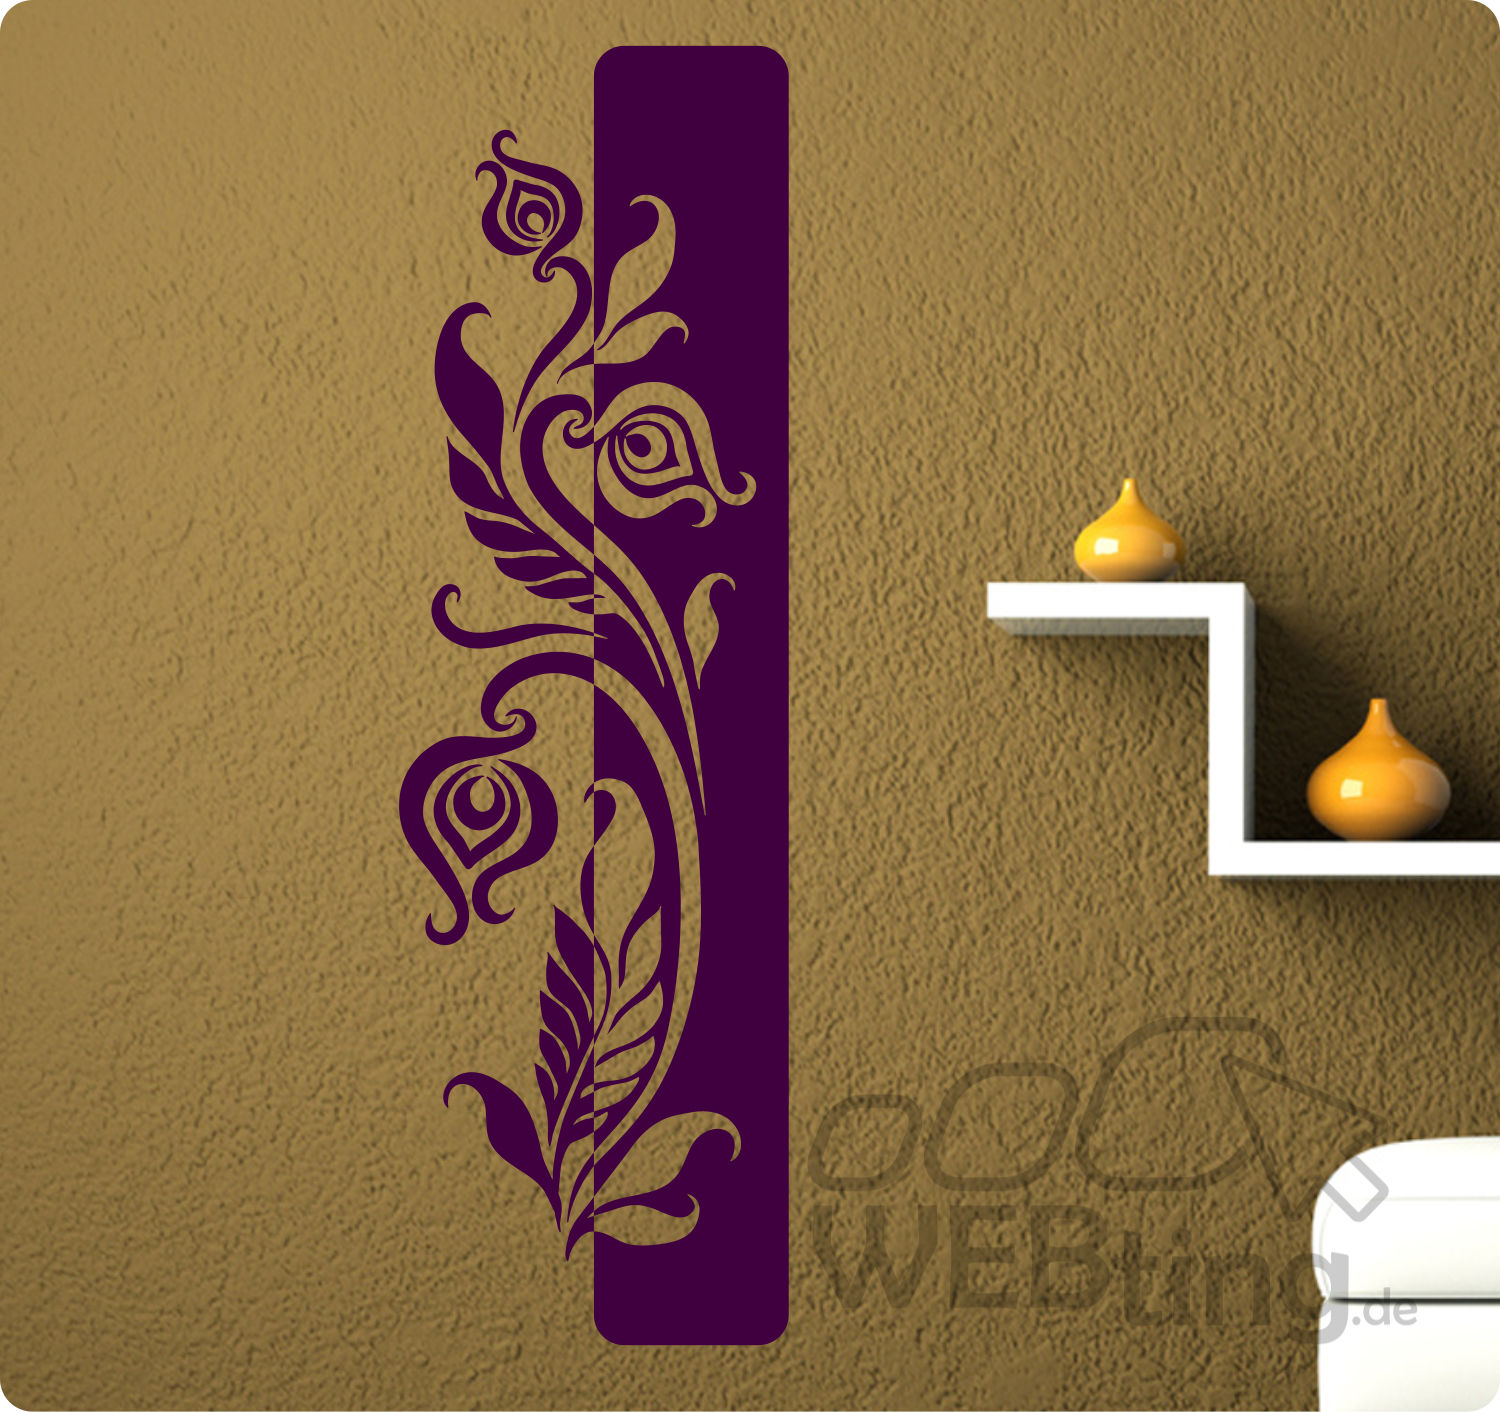 wandtattoo banner blumen ranke wandaufkleber aufkleber streifen bl ten motiv. Black Bedroom Furniture Sets. Home Design Ideas